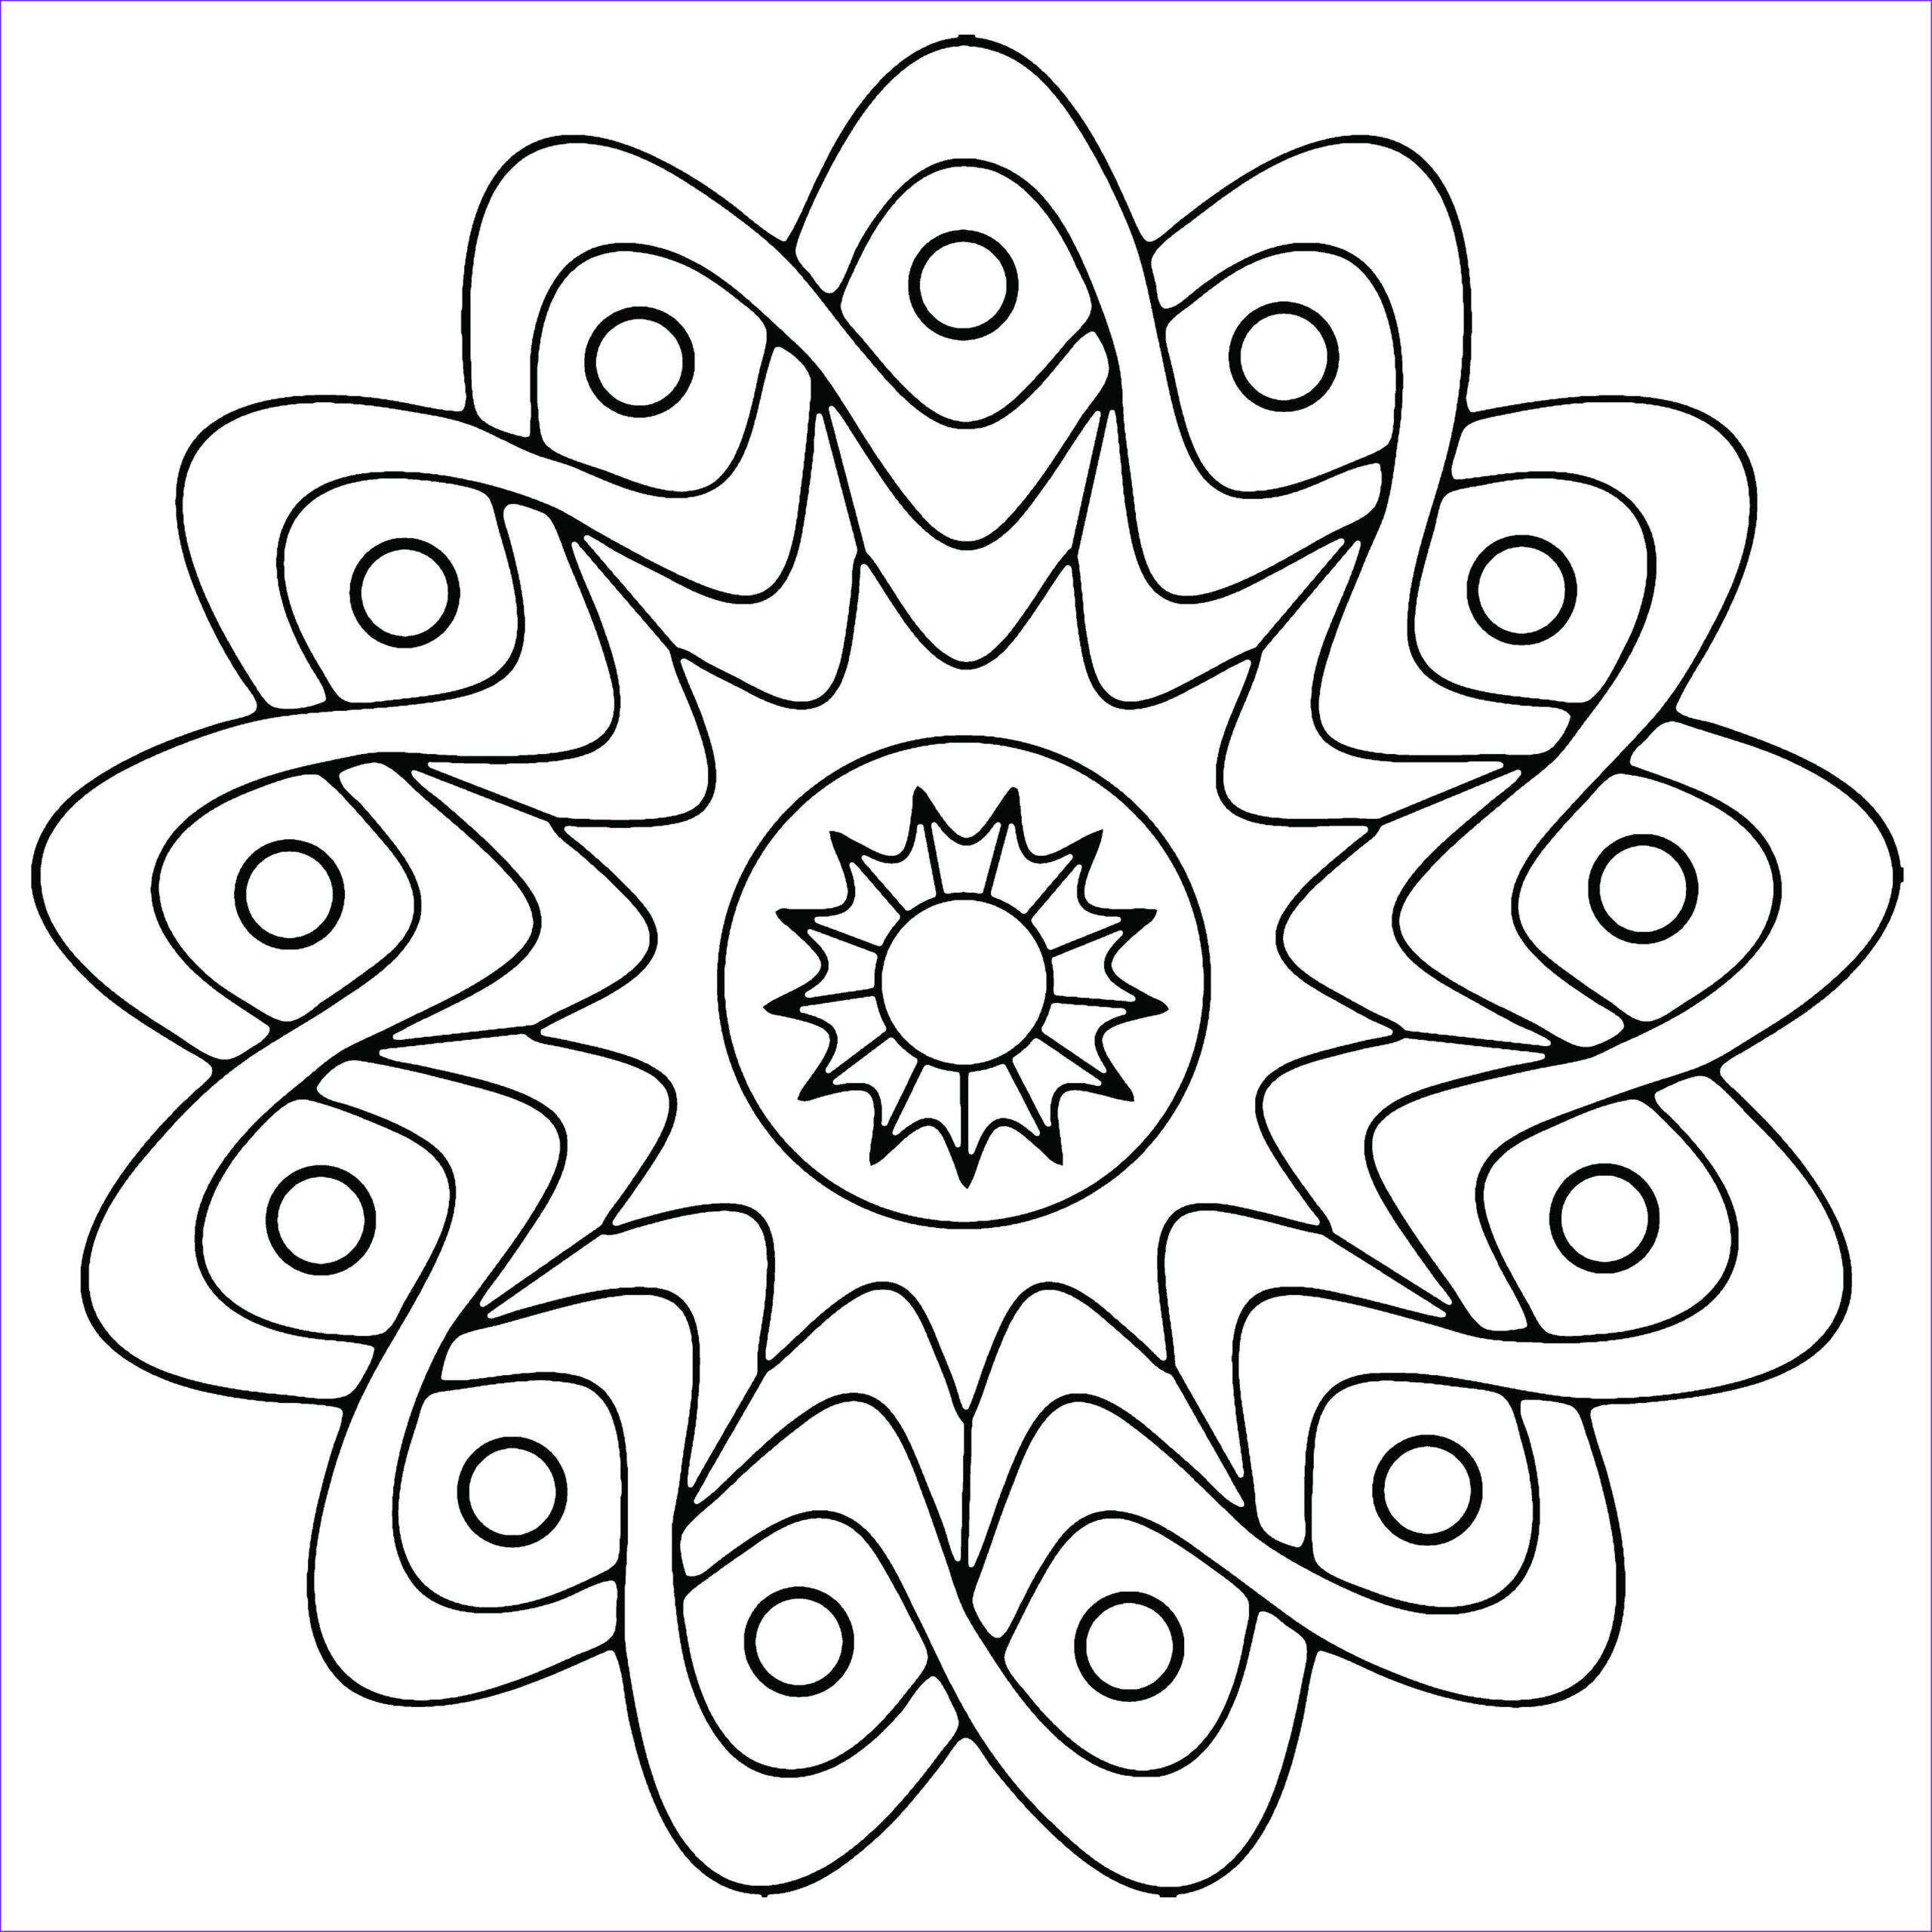 Coloring Pages Designs Inspirational Stock Free Printable Geometric Coloring Pages for Kids